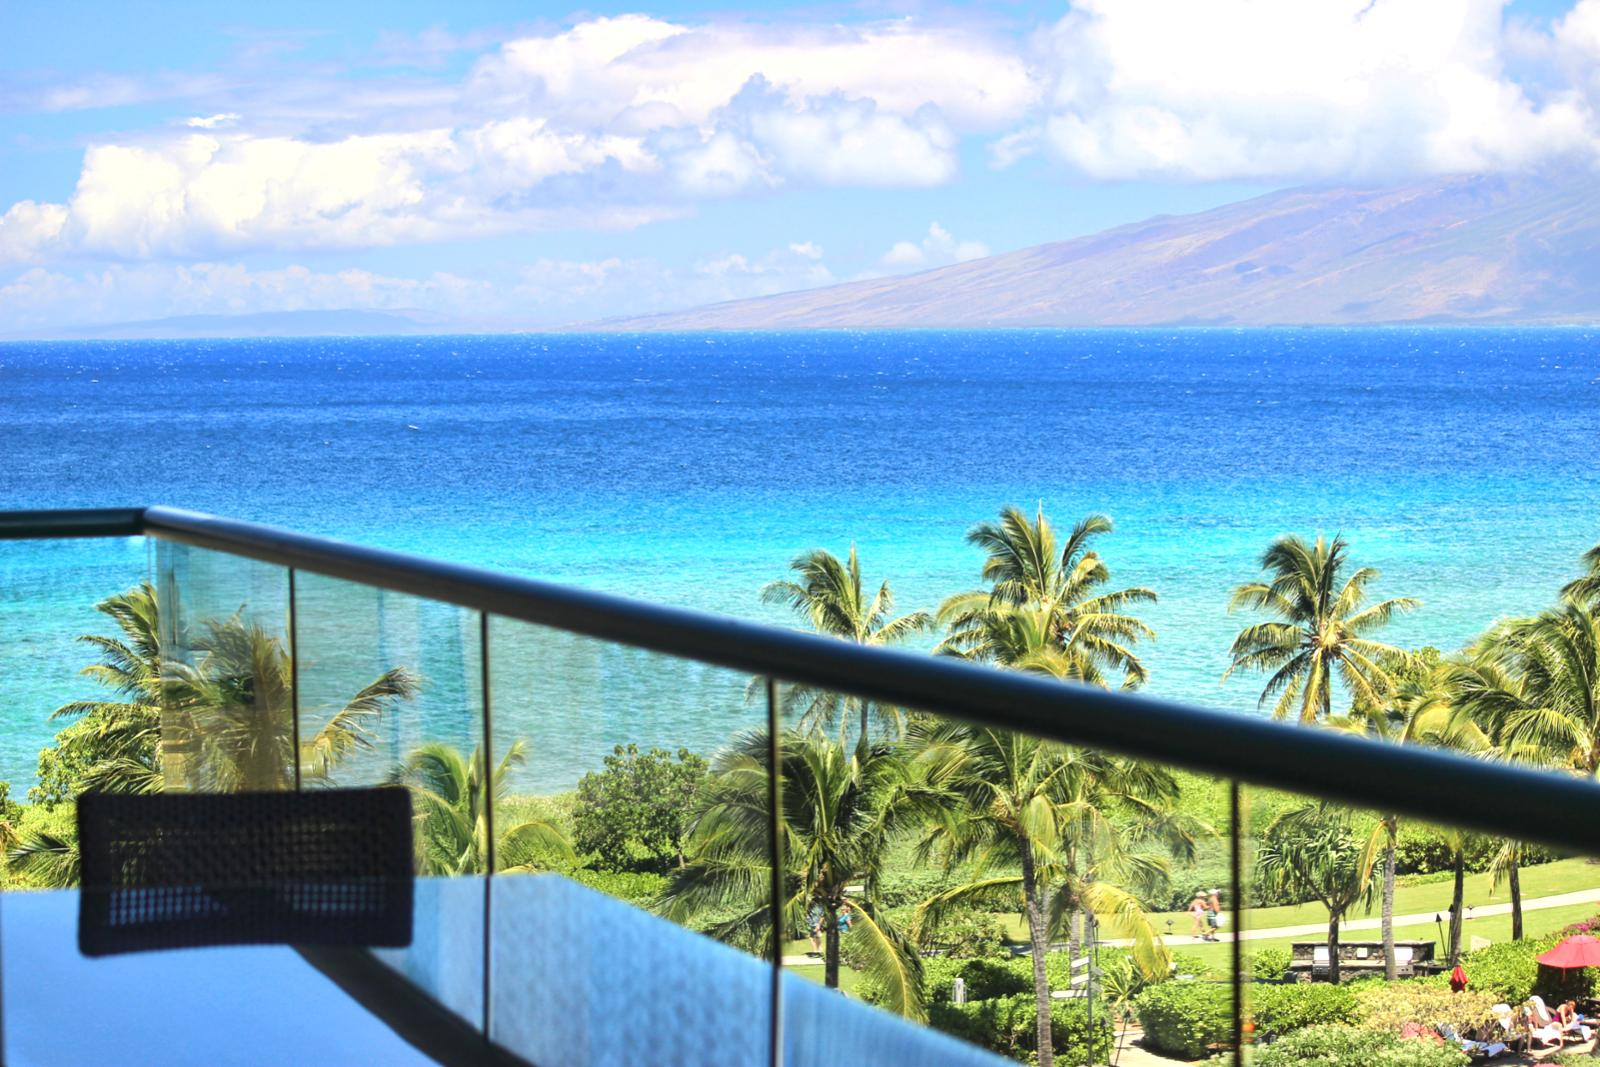 Sit back on your lanai and enjoy a cold beverage or a nice lunch while taken in the beauty.